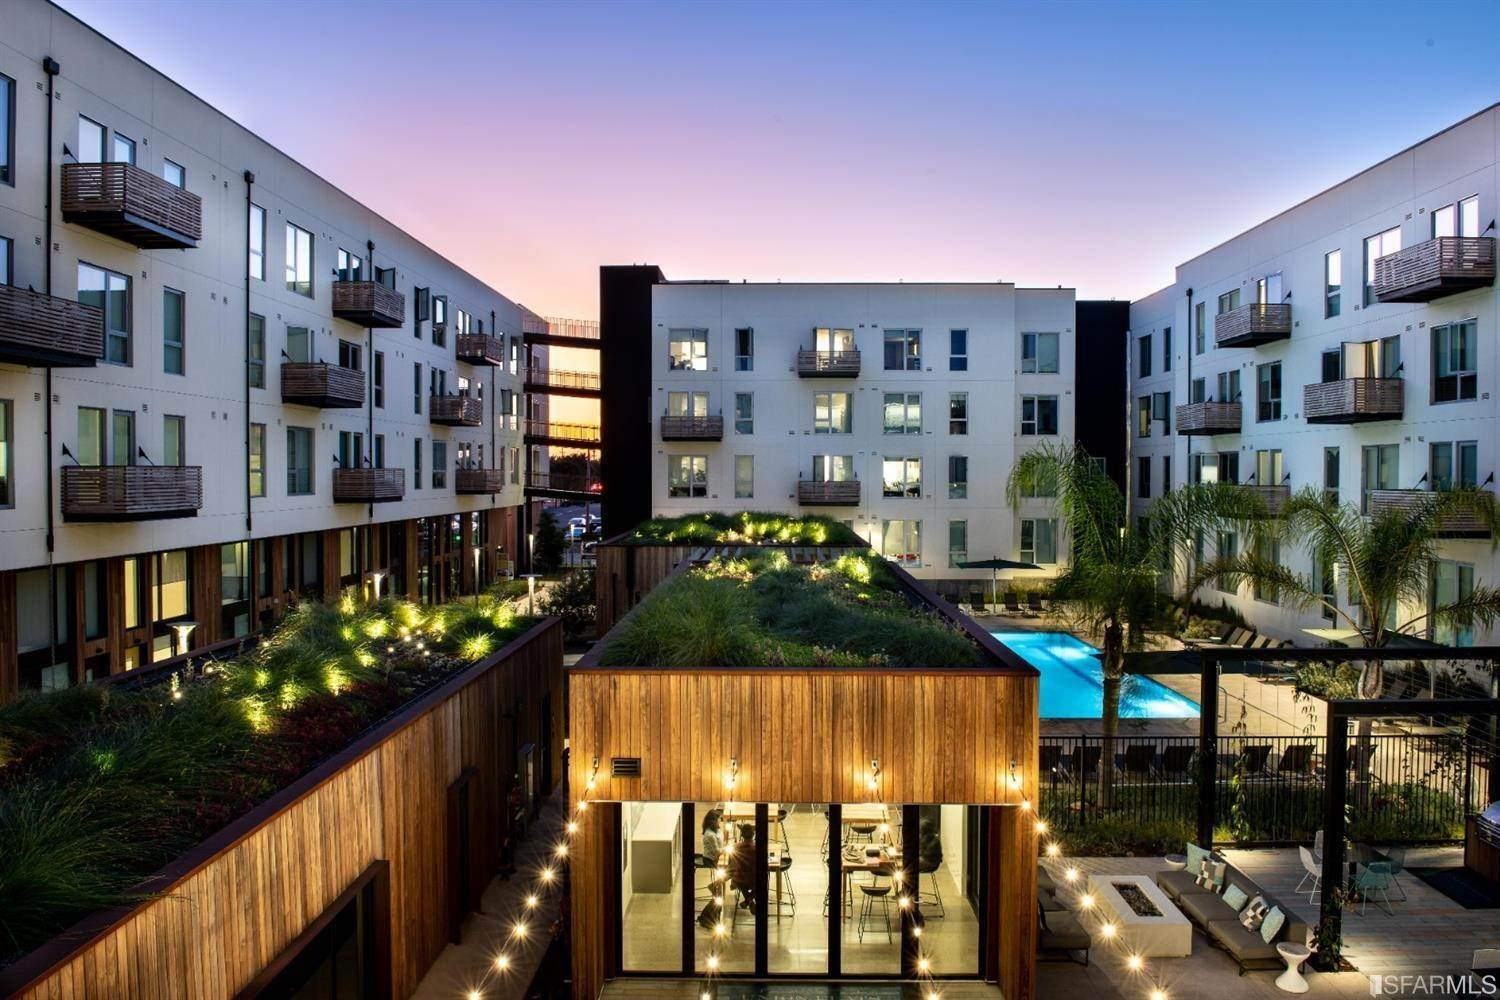 Apartments en 34588 11th Street Union City, California 94587 Estados Unidos